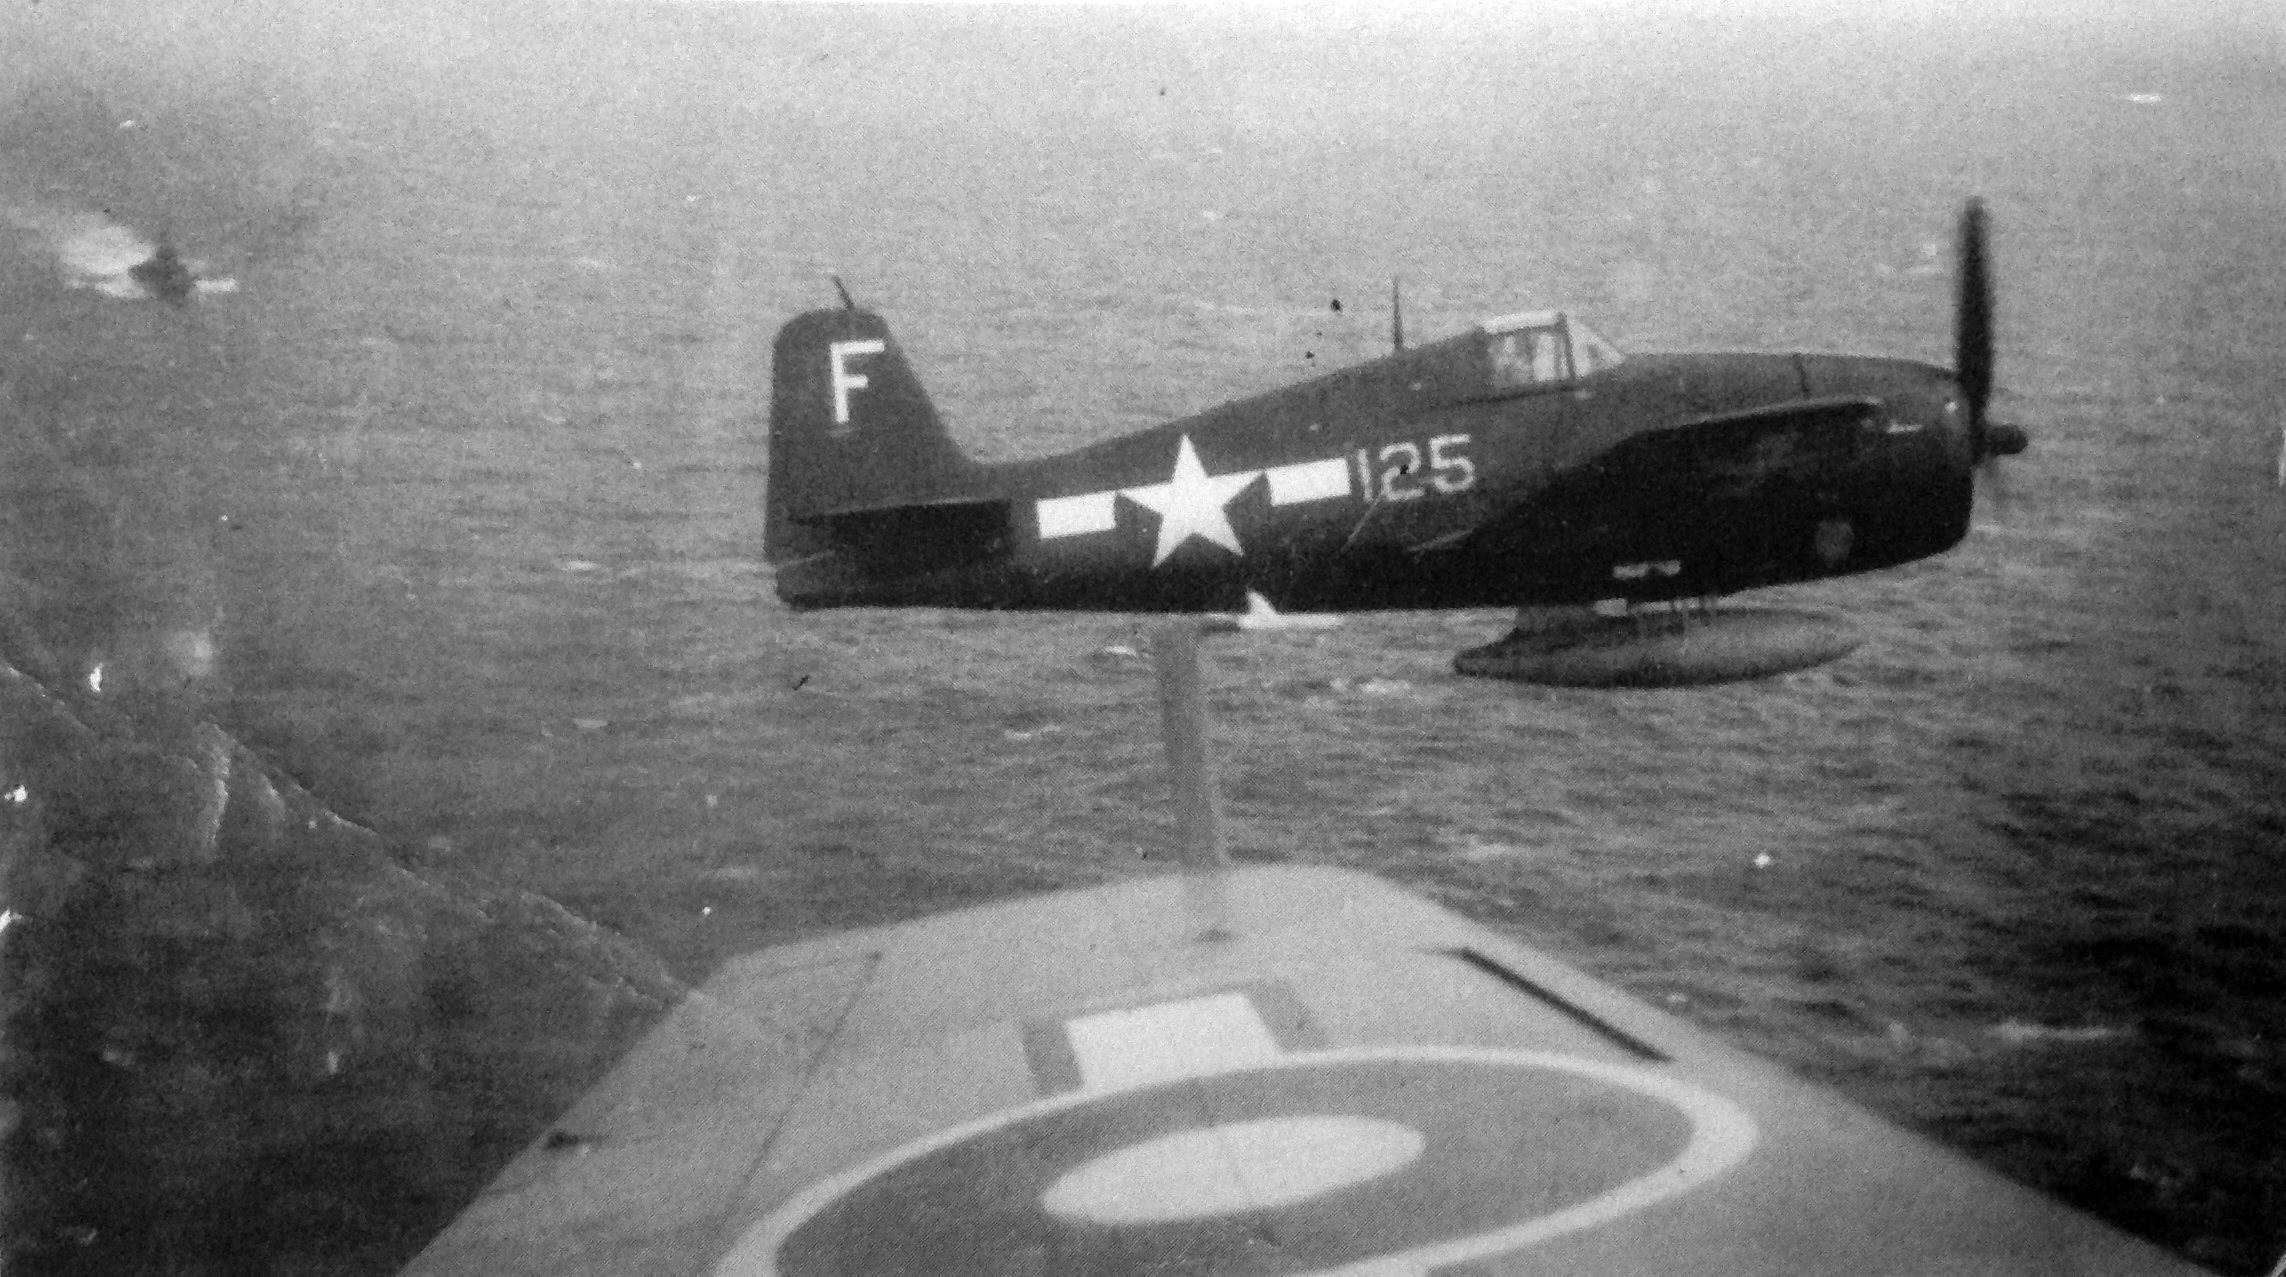 Insurmountable hurdle ... An FAA Avenger in close company with a USN Hellcat in the last weeks of the war when the two fleets worked together. Some political sectors in both the UK and US saw such close operation as something to be avoided, at any tactical cost.